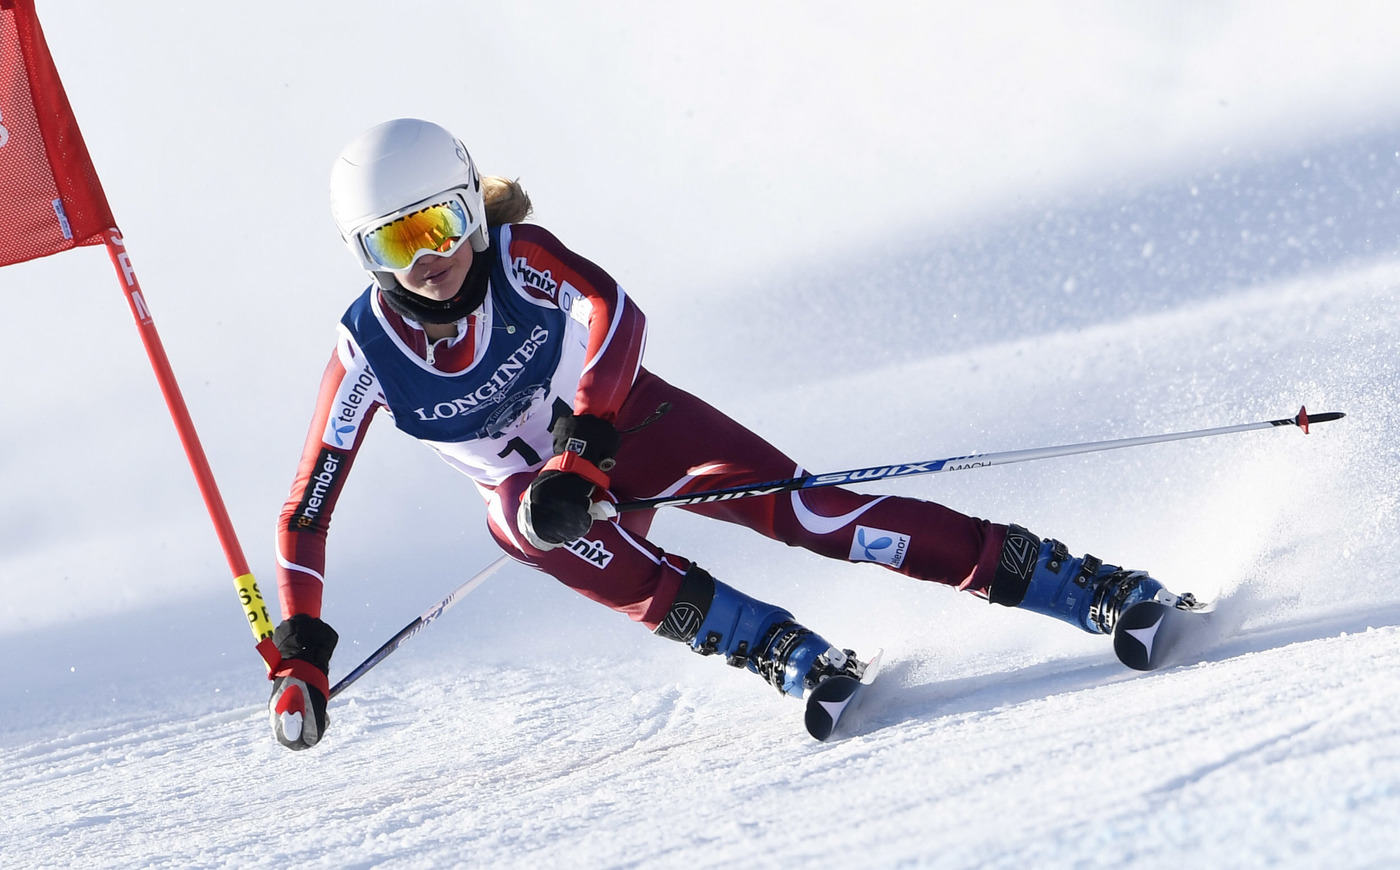 Longines Alpine Skiing Event: LONGINES FUTURE SKI CHAMPIONS - THE BEST YOUNG FEMALE SKIERS 1